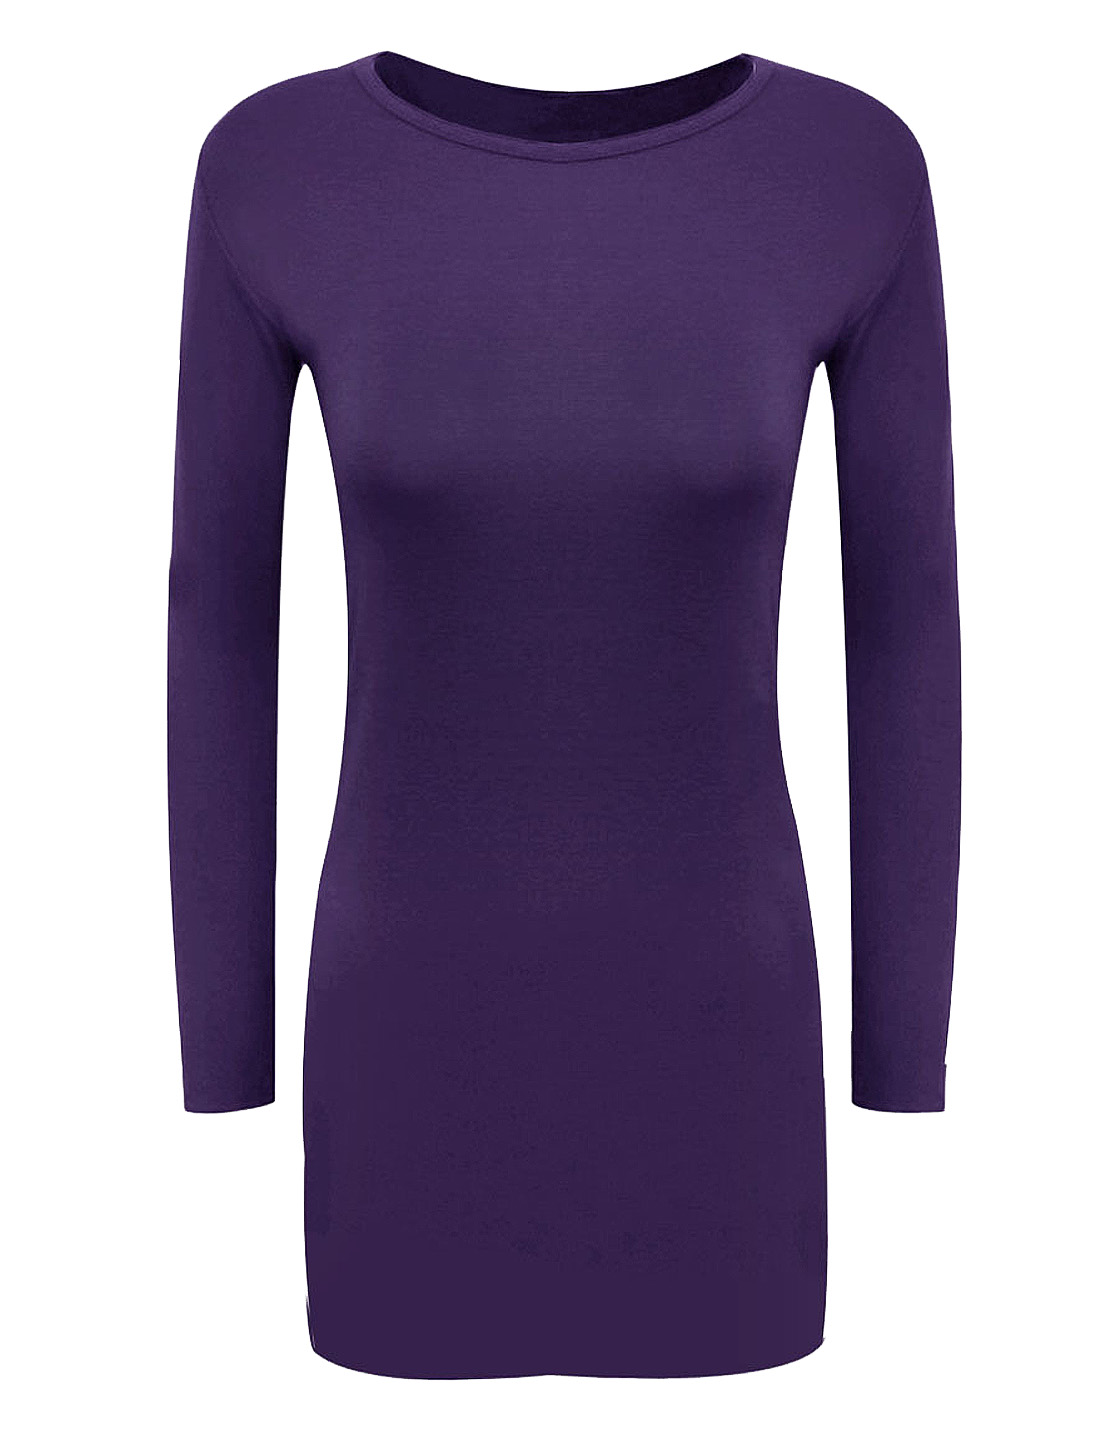 Women Round Neck Long Sleeves Slim Fit Fashion Sheath Dress Purple M